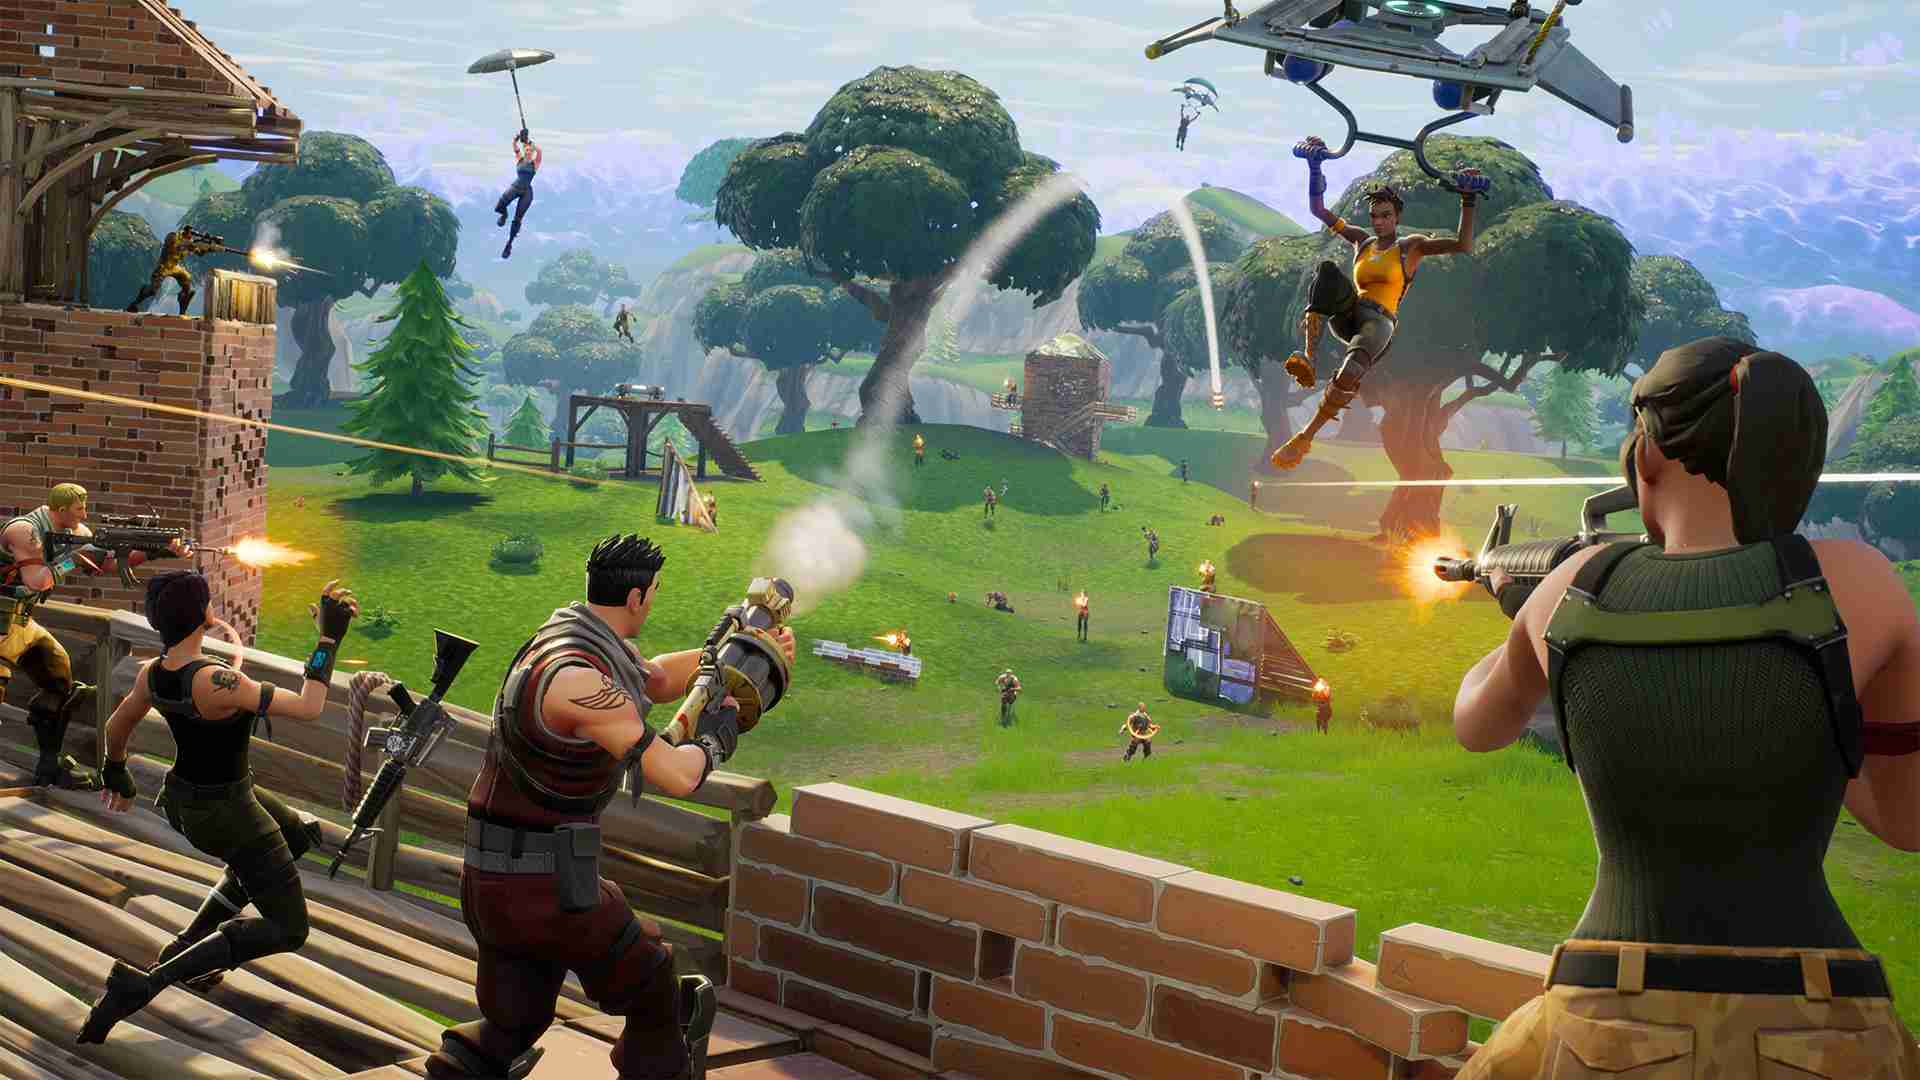 Fortnite Players May Encounter Server Issues This Week